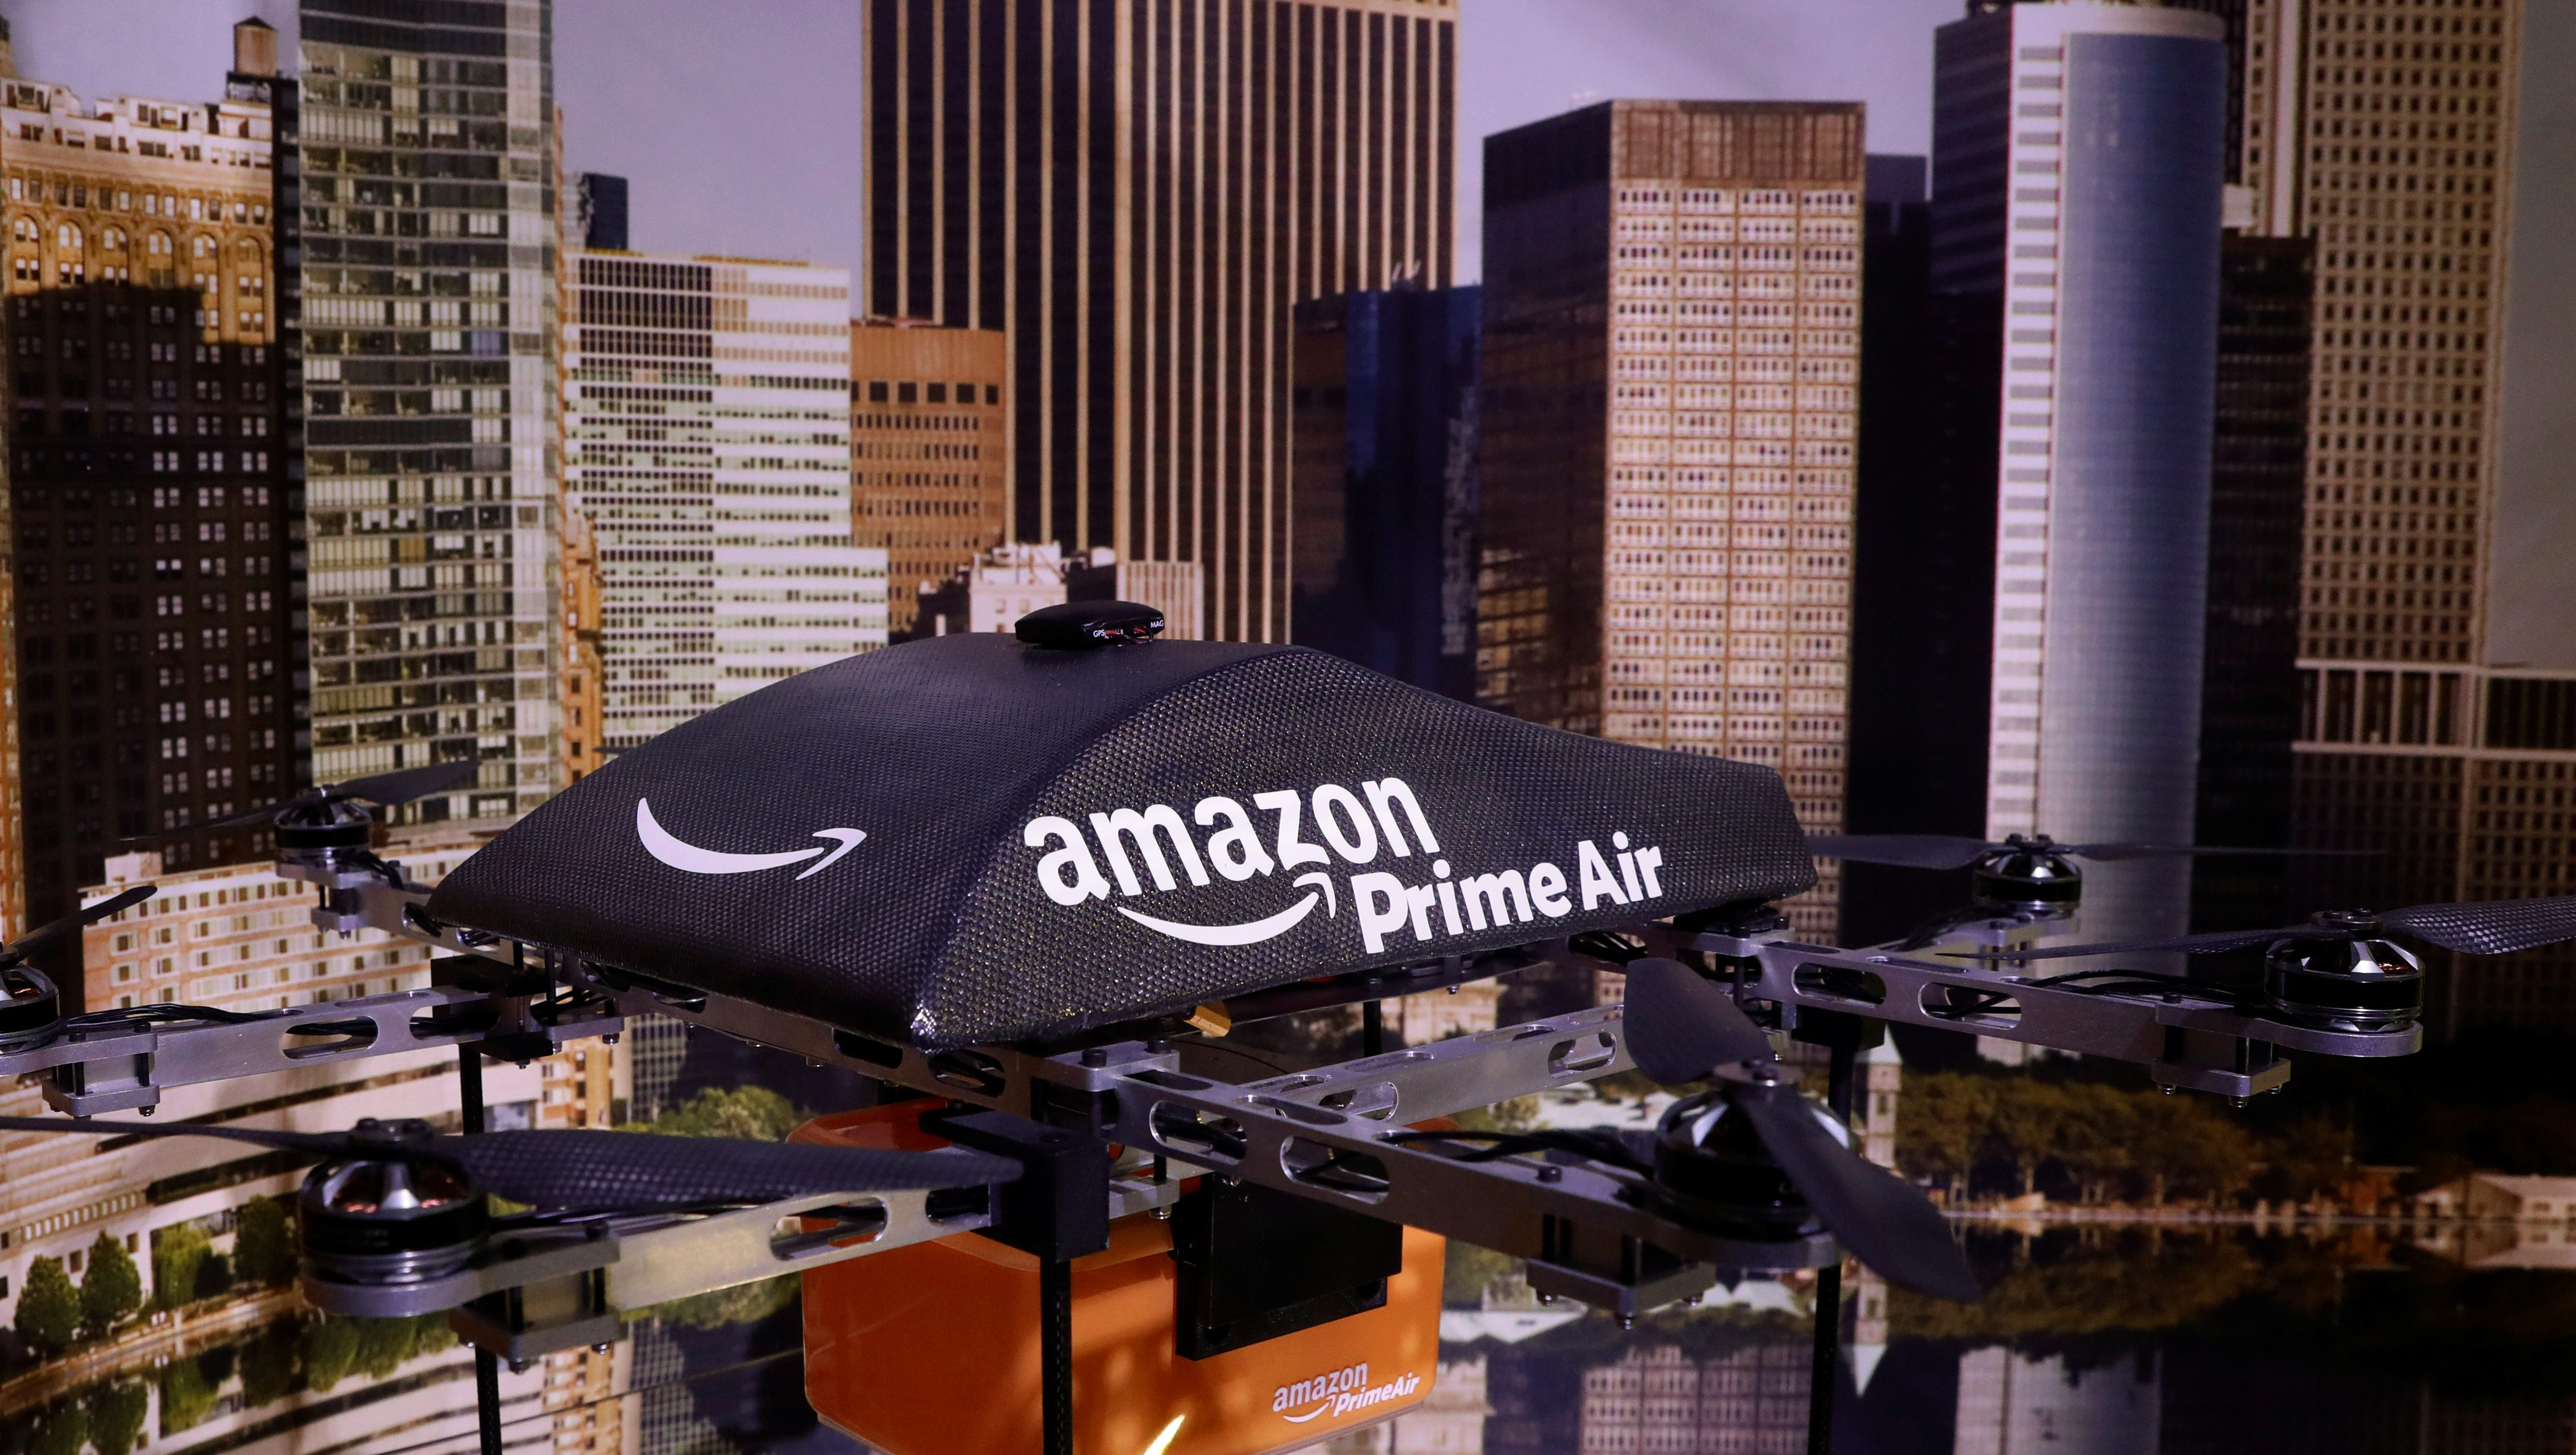 An Amazon Prime Air Flying Drone is displayed during the 'Drones: Is the Sky the Limit?' exhibition at the Intrepid Sea, Air & Space Museum in New York City, U.S., May 9, 2017. RC1C46E39350